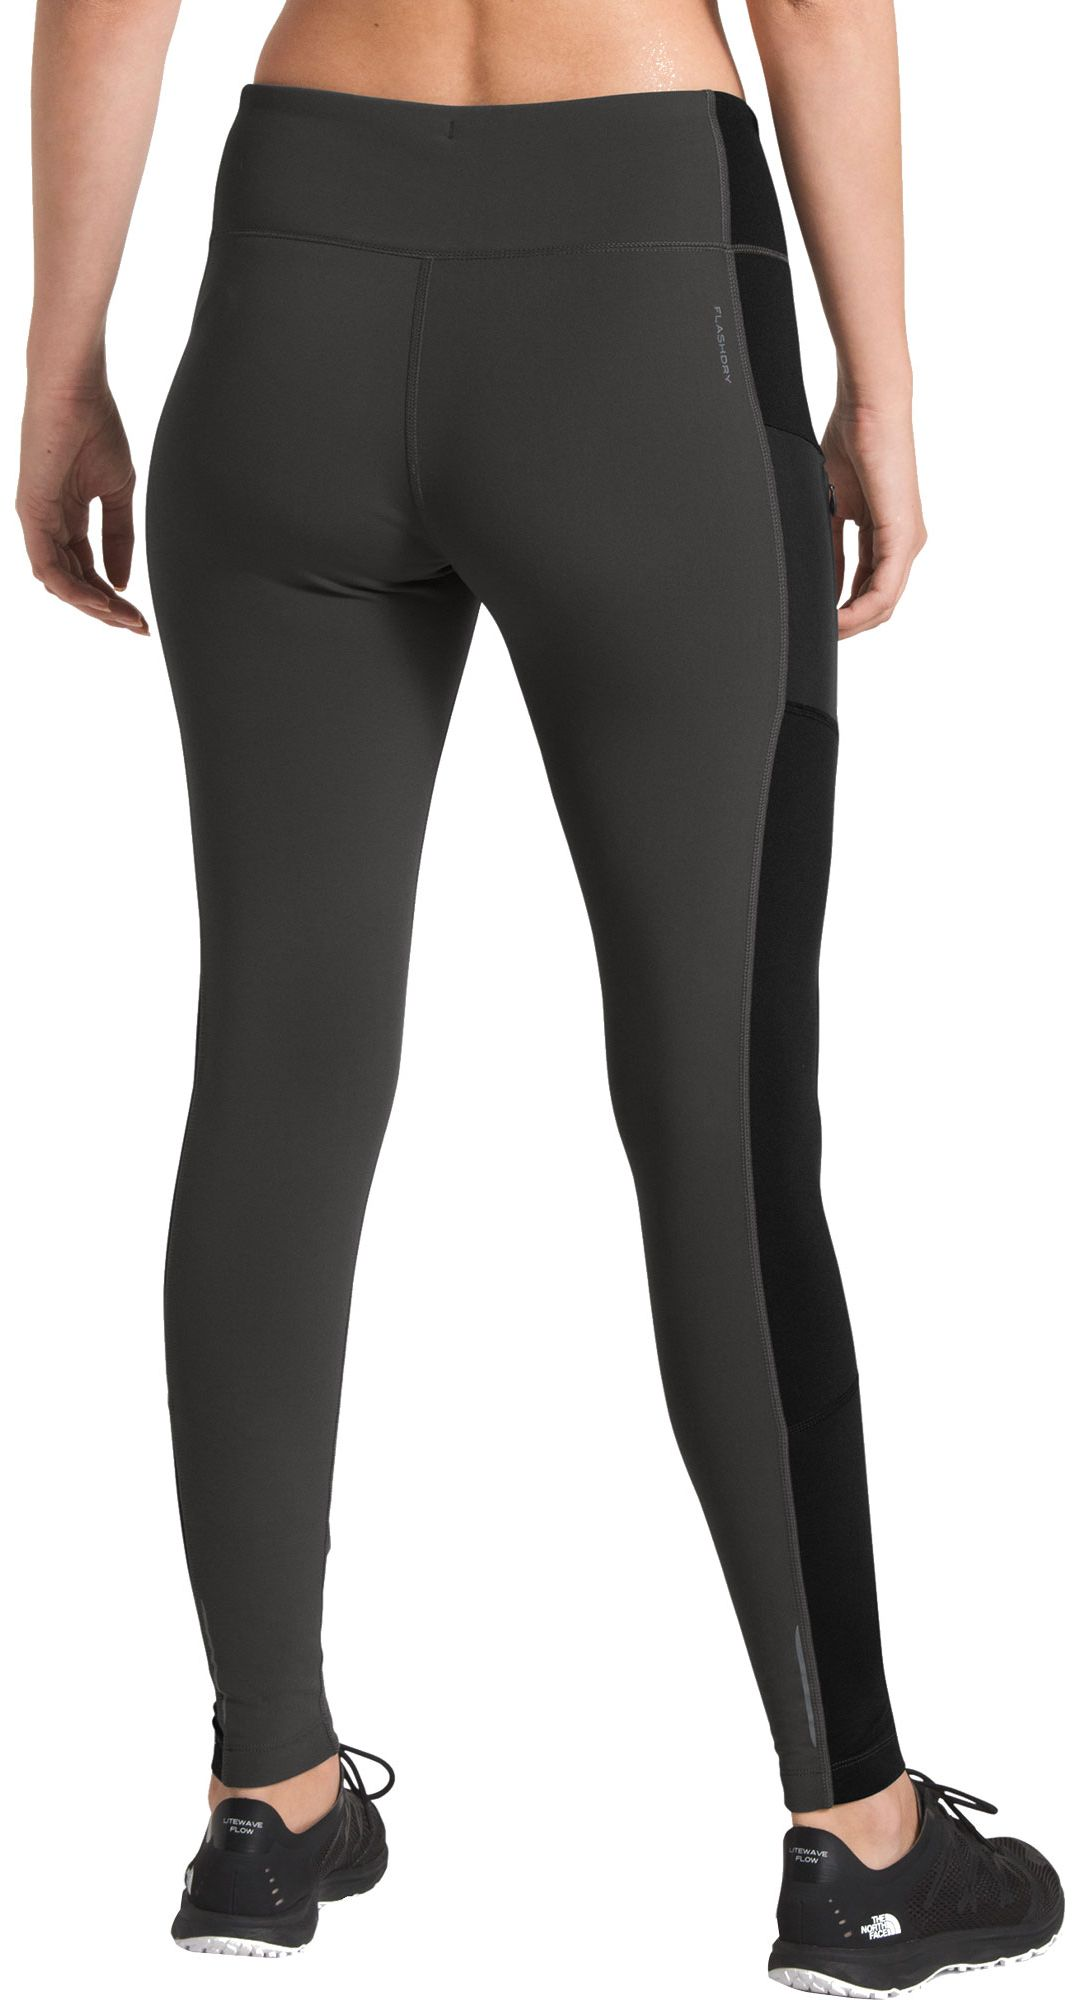 ee8e464cc The North Face Women's Winter Warm Mid-Rise Tights